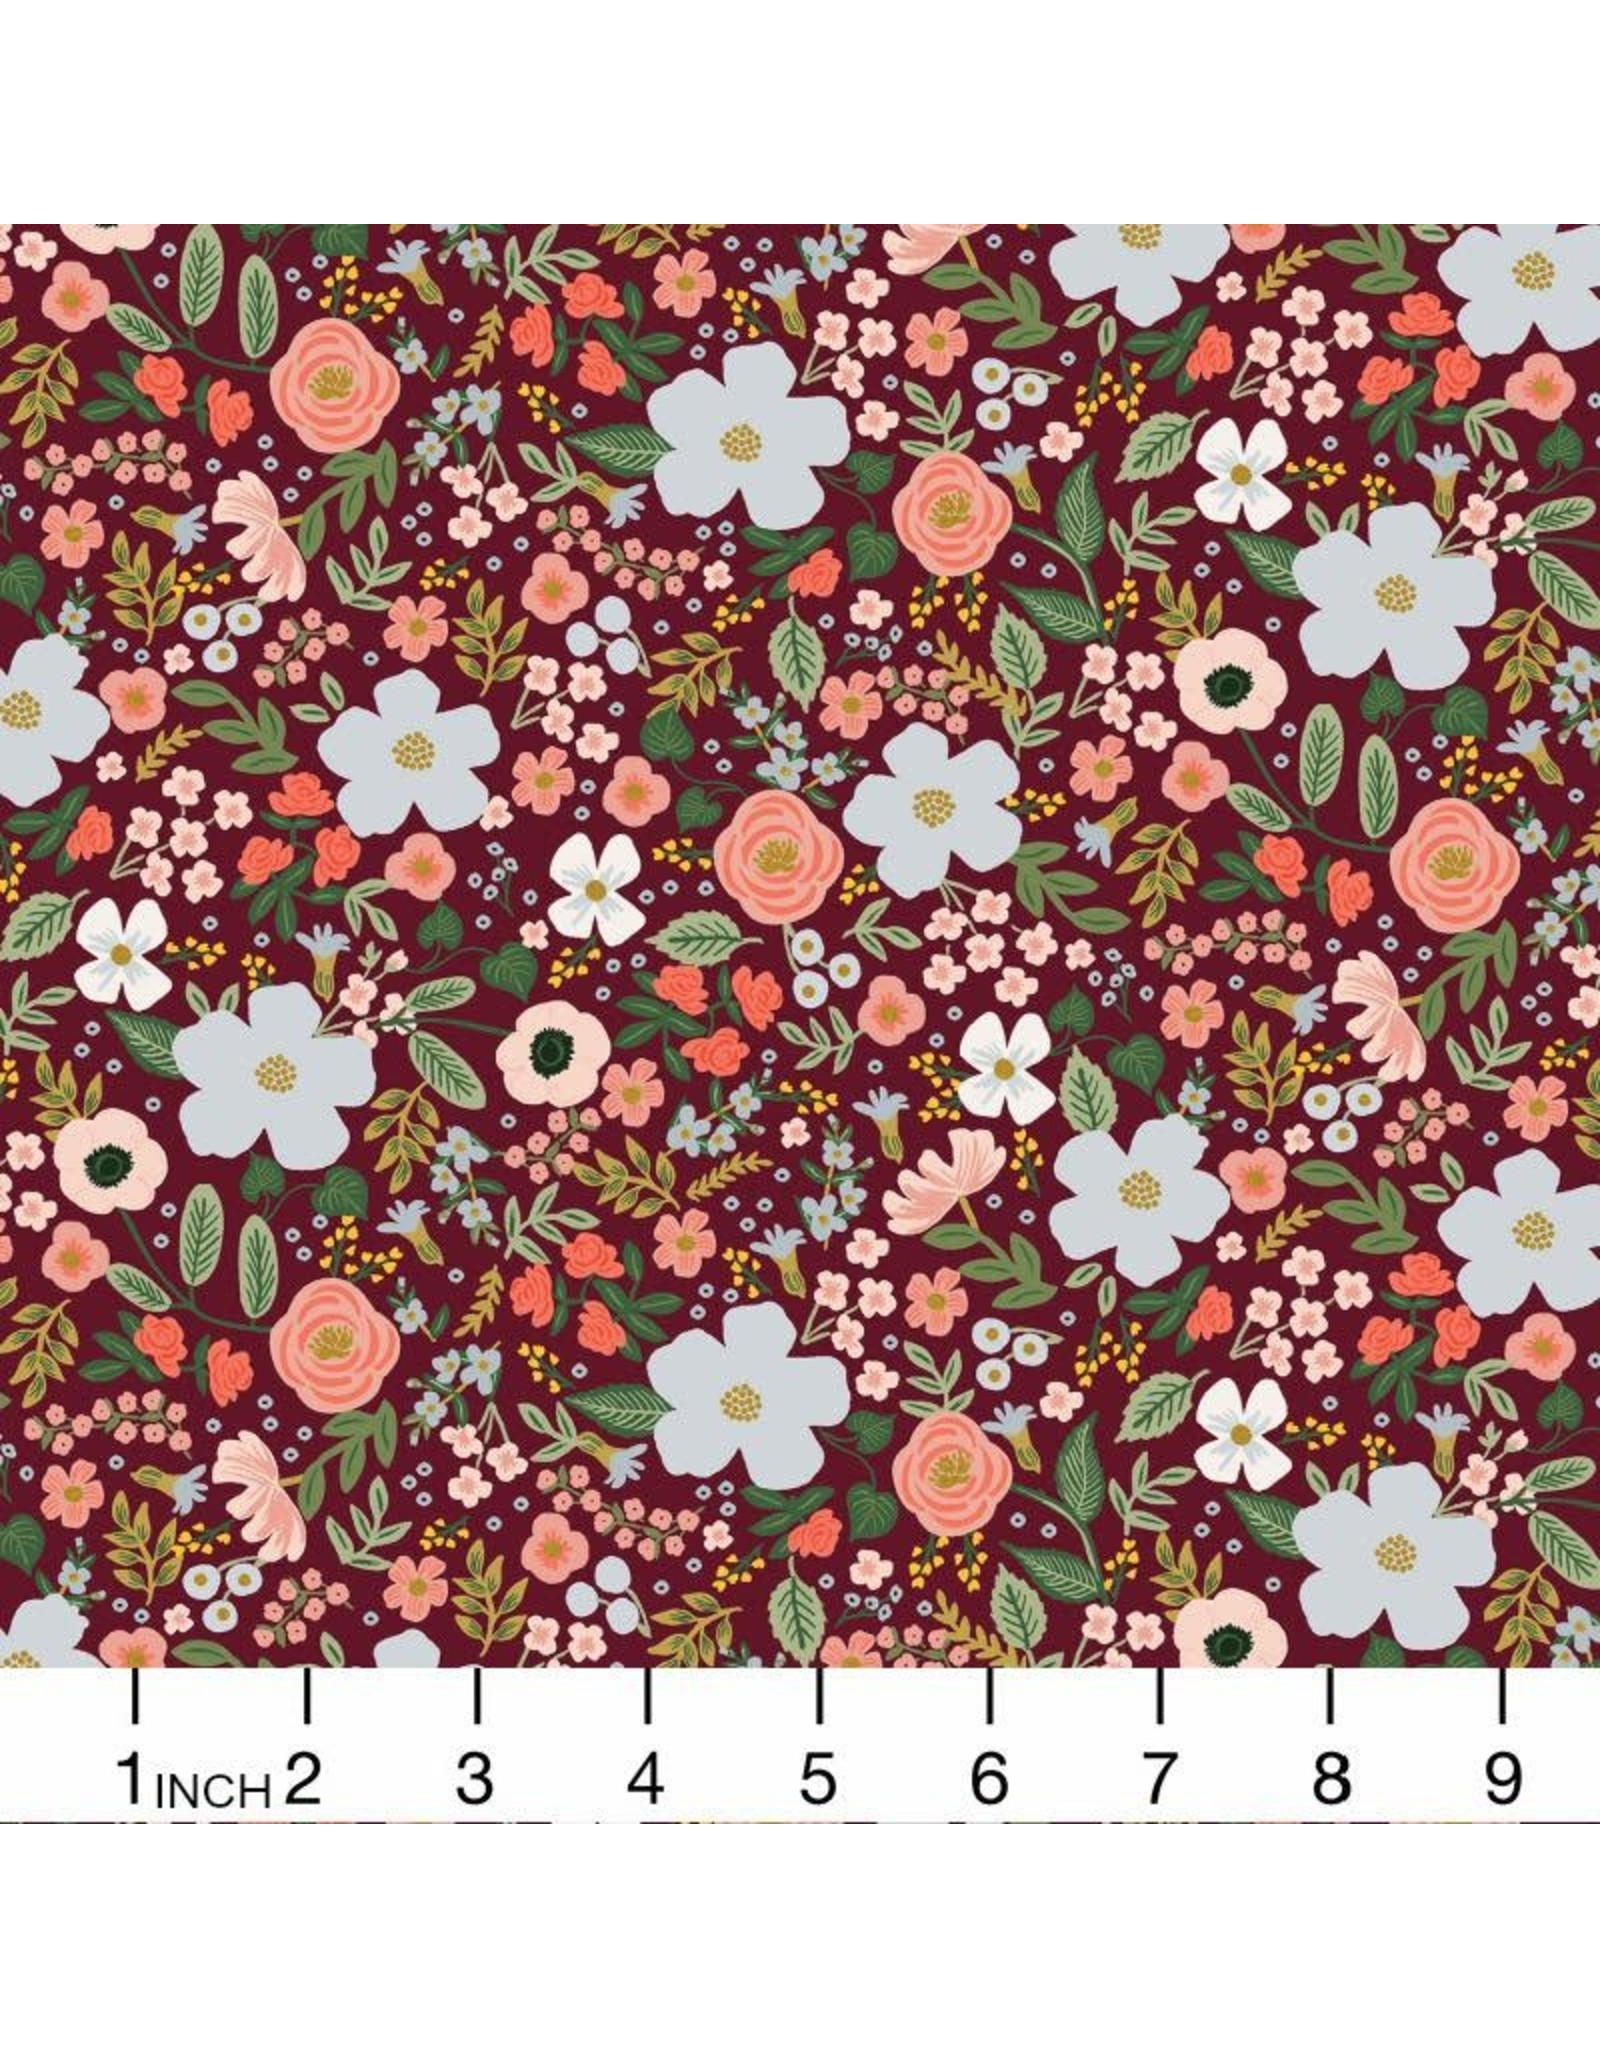 Rifle Paper Co. Garden Party, Wild Rose in Burgundy with Metallic, Fabric Half-Yards RP303-BU5M